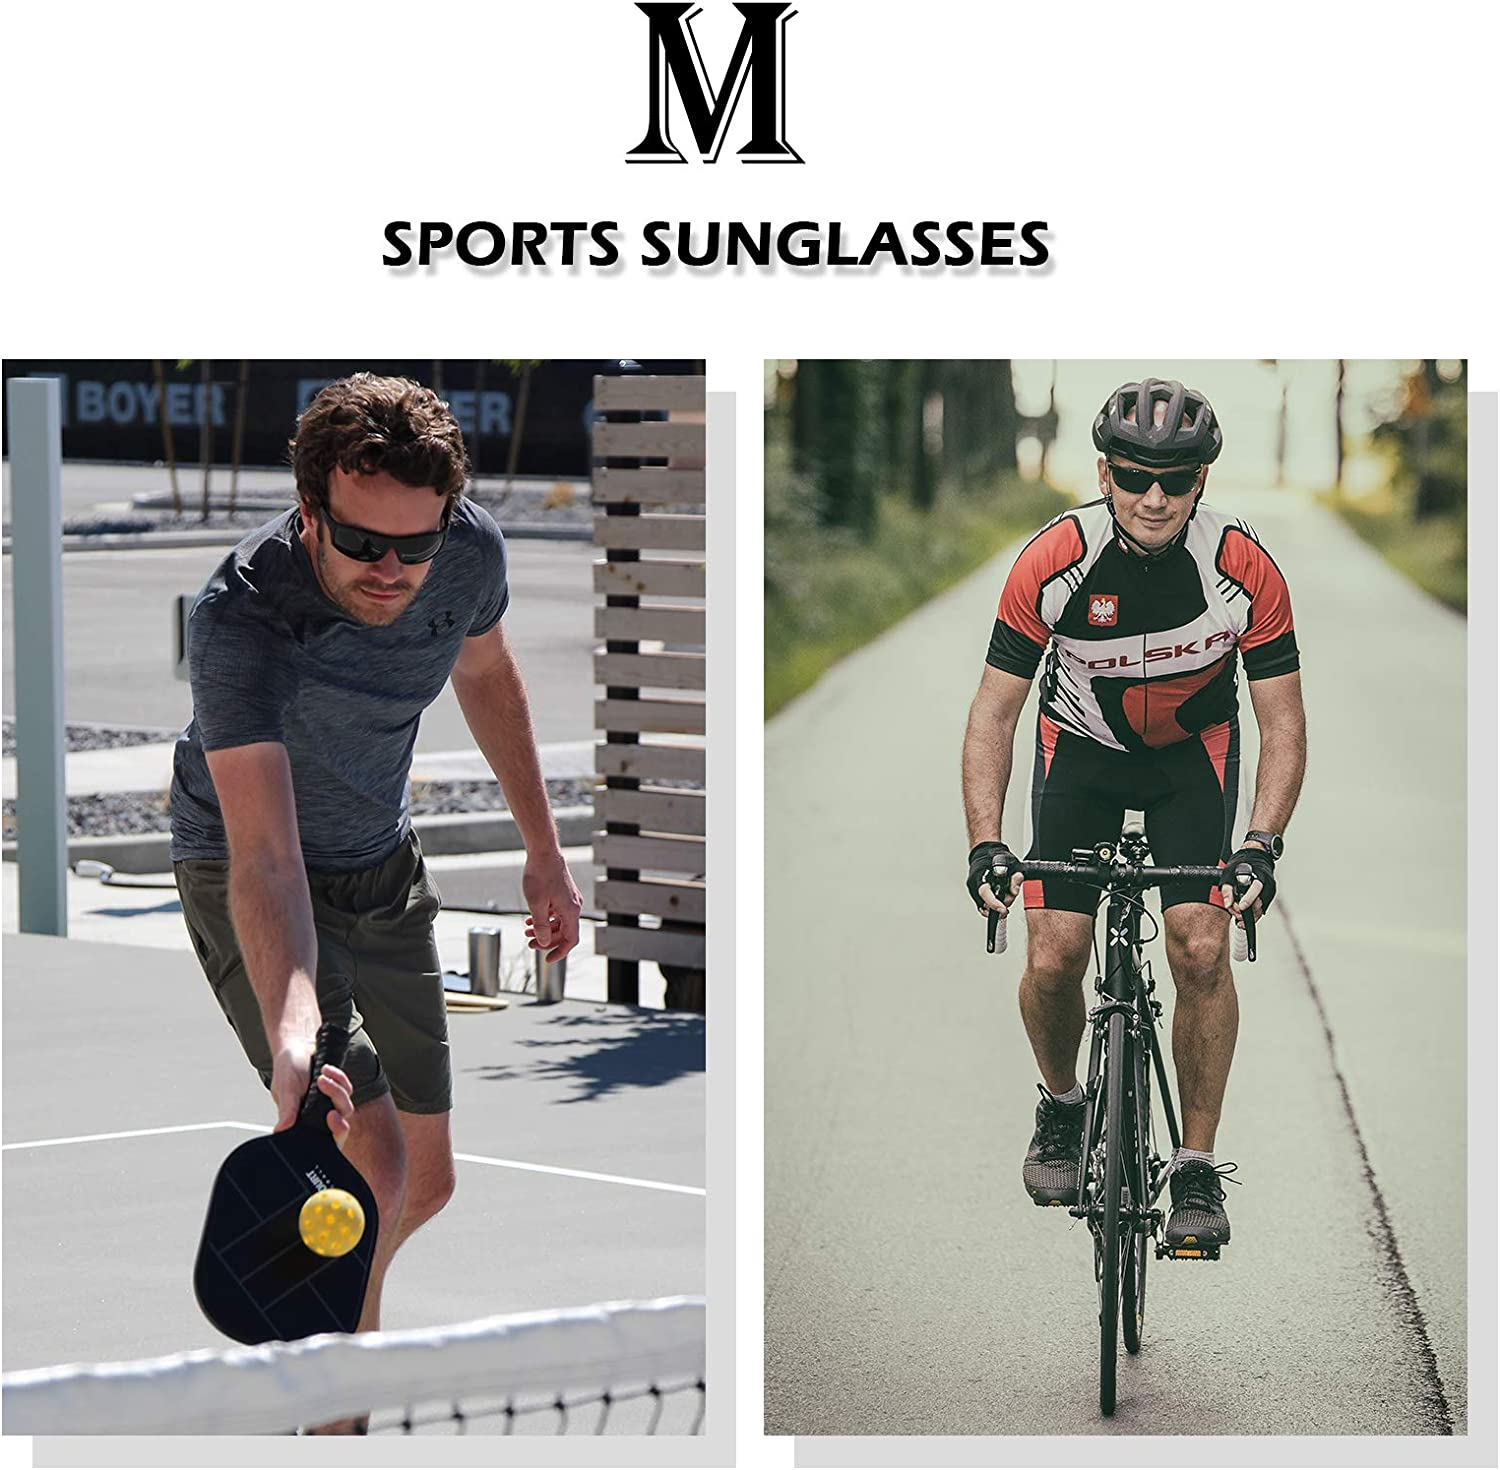 MXNX Polarized Sports Sunglasses for Men Driving Cycling Fishing 100/% UV Protection